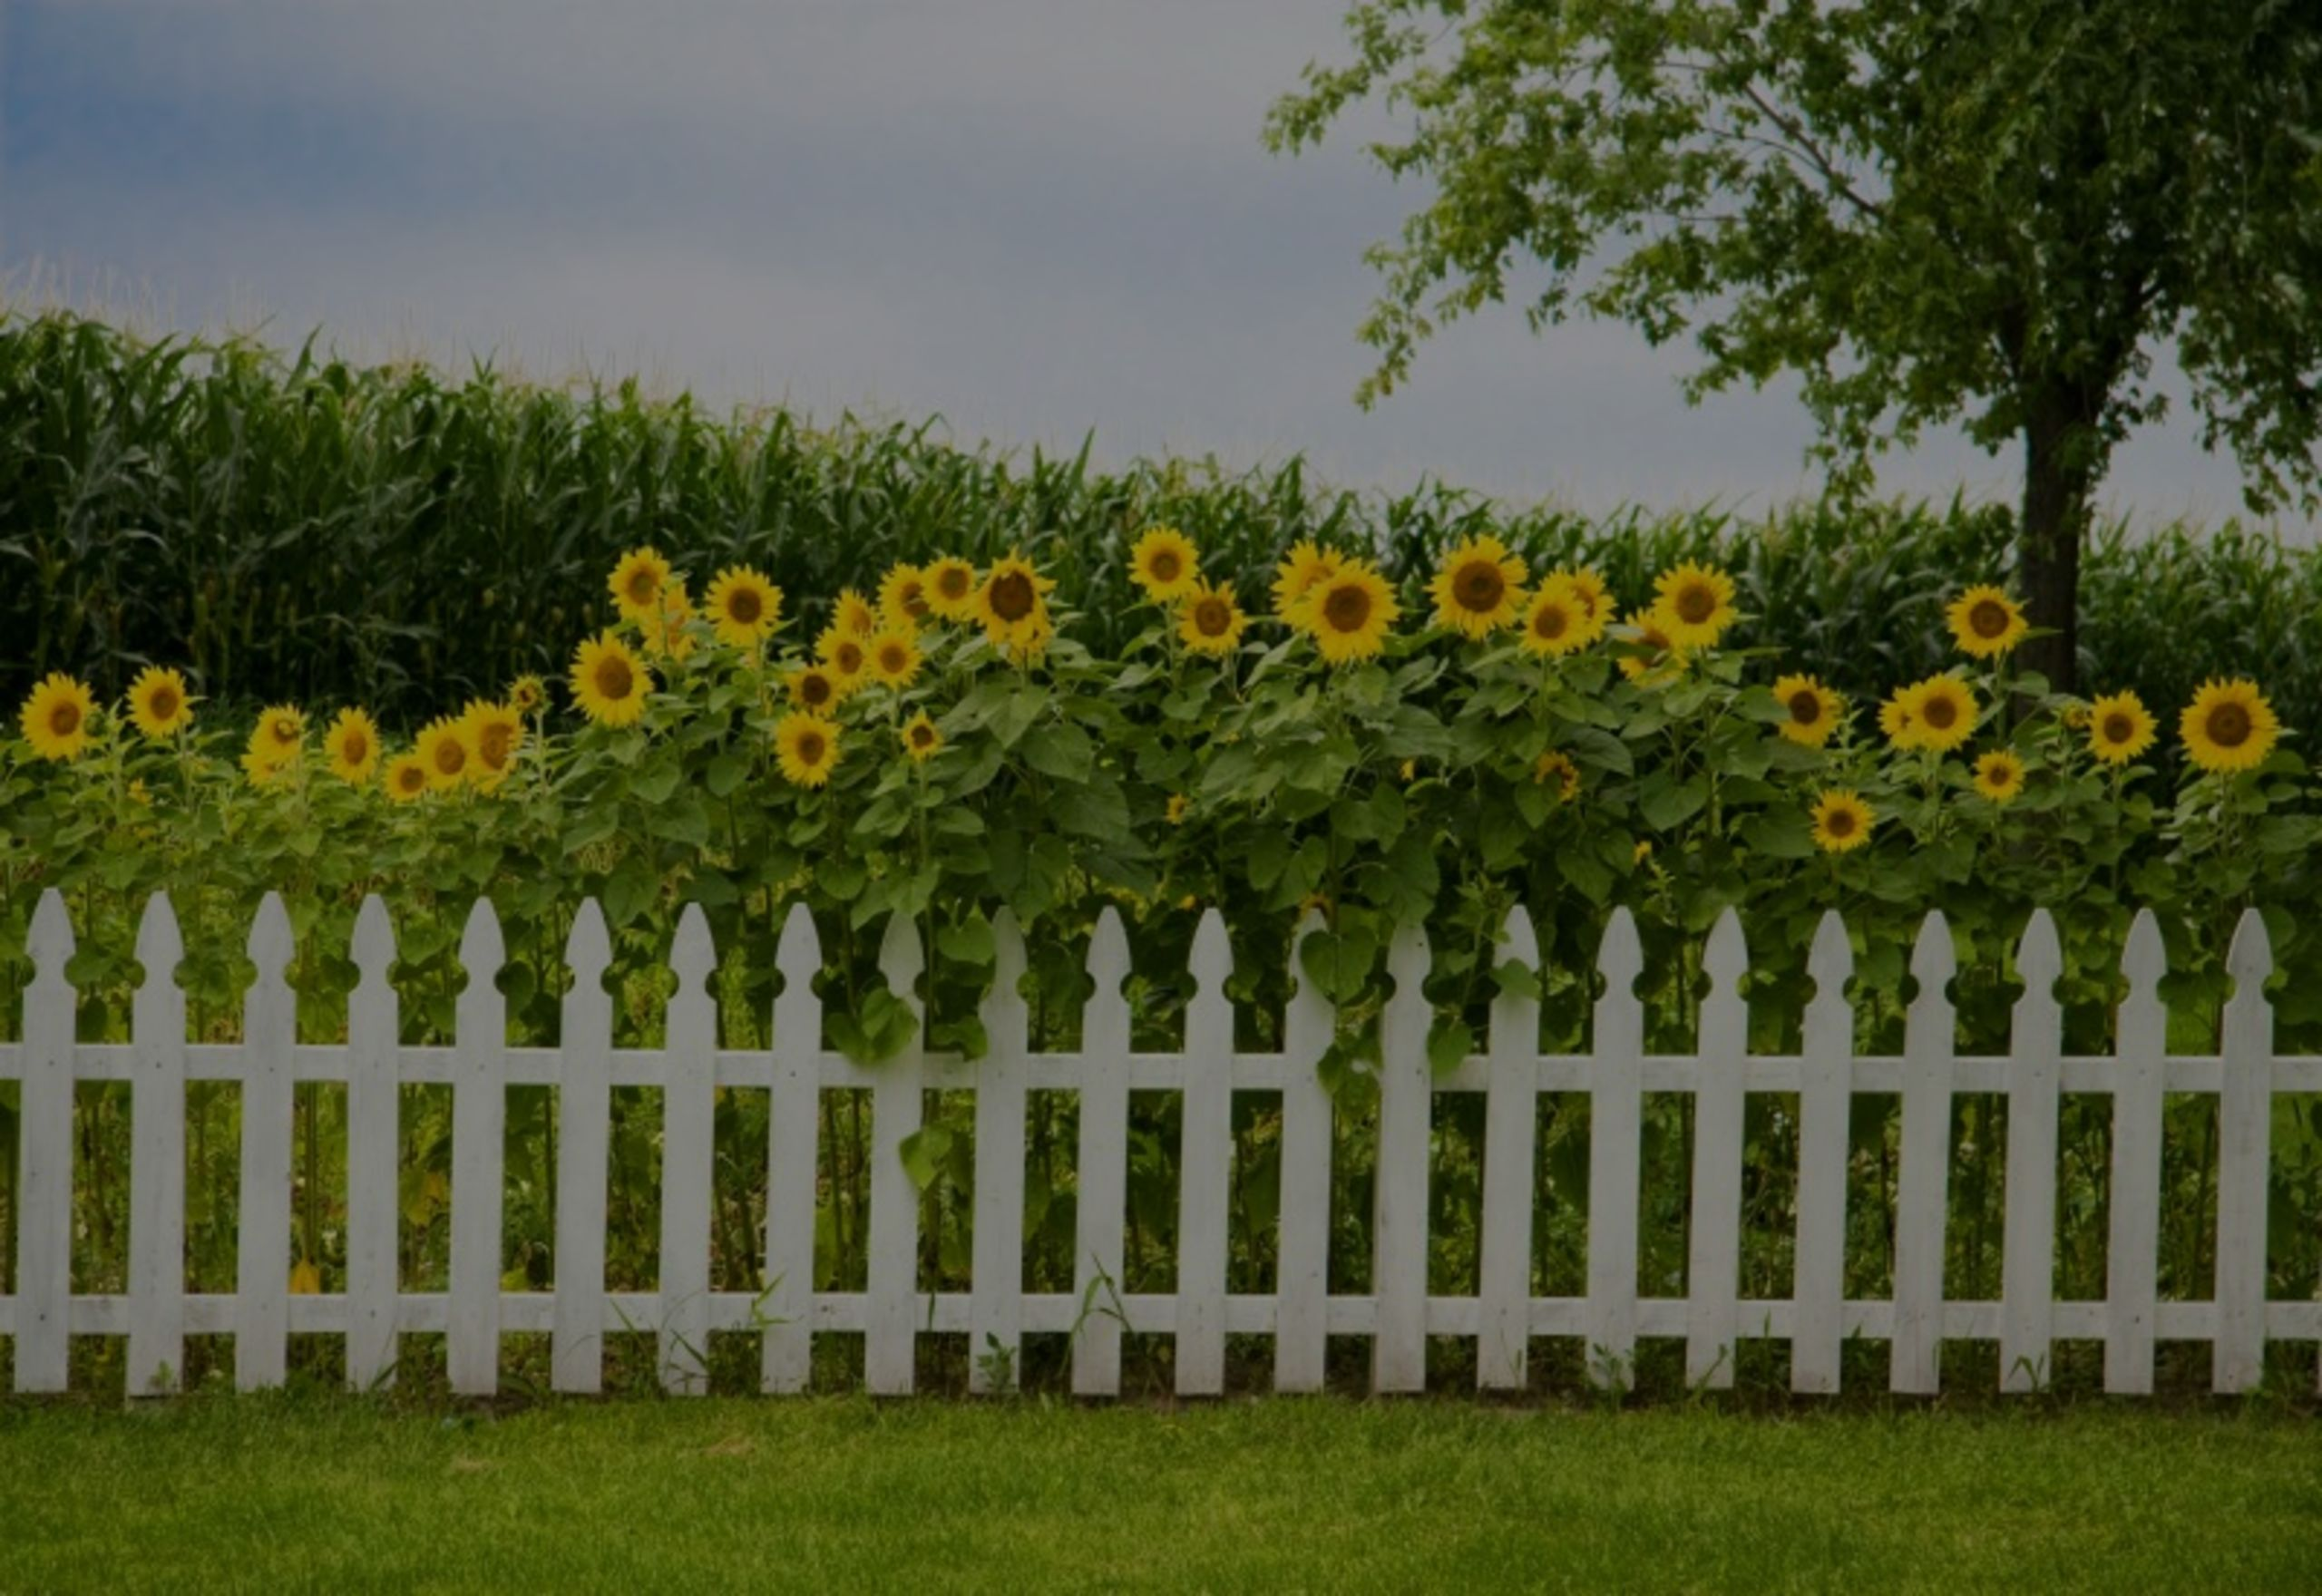 Quintessentally American – The White Picket Fence